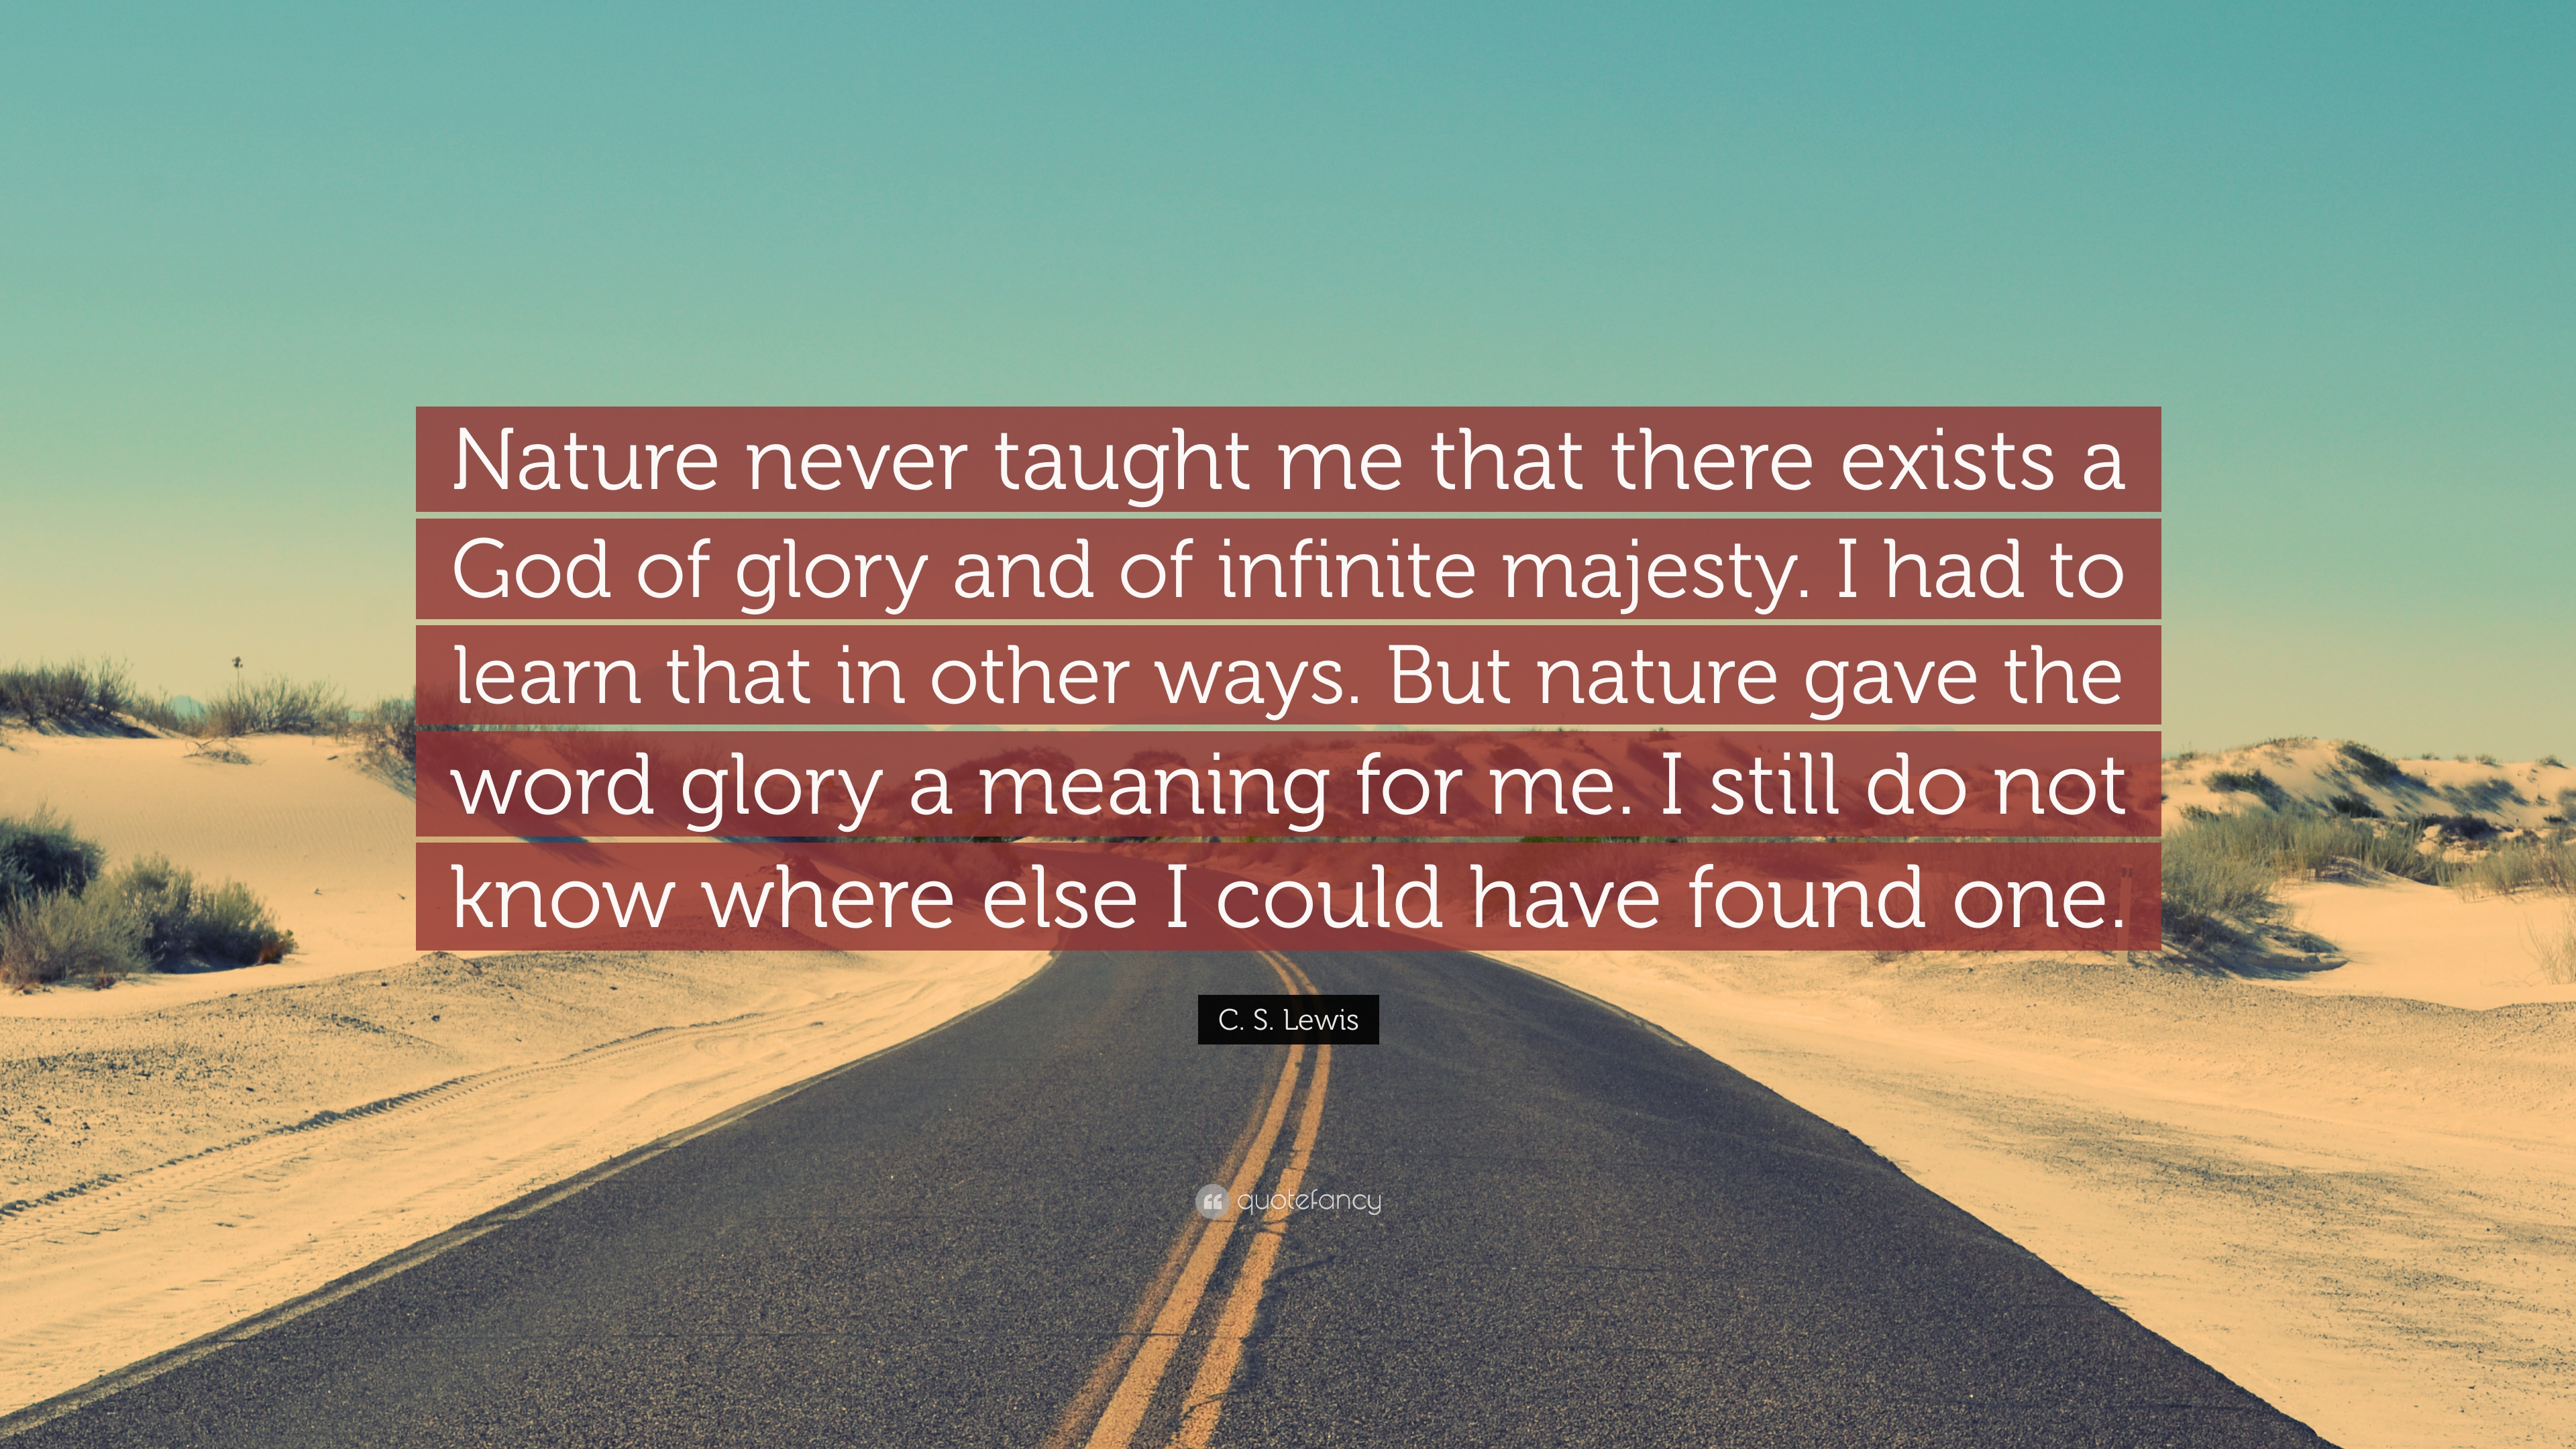 C S Lewis Quote Nature Never Taught Me That There Exists A God